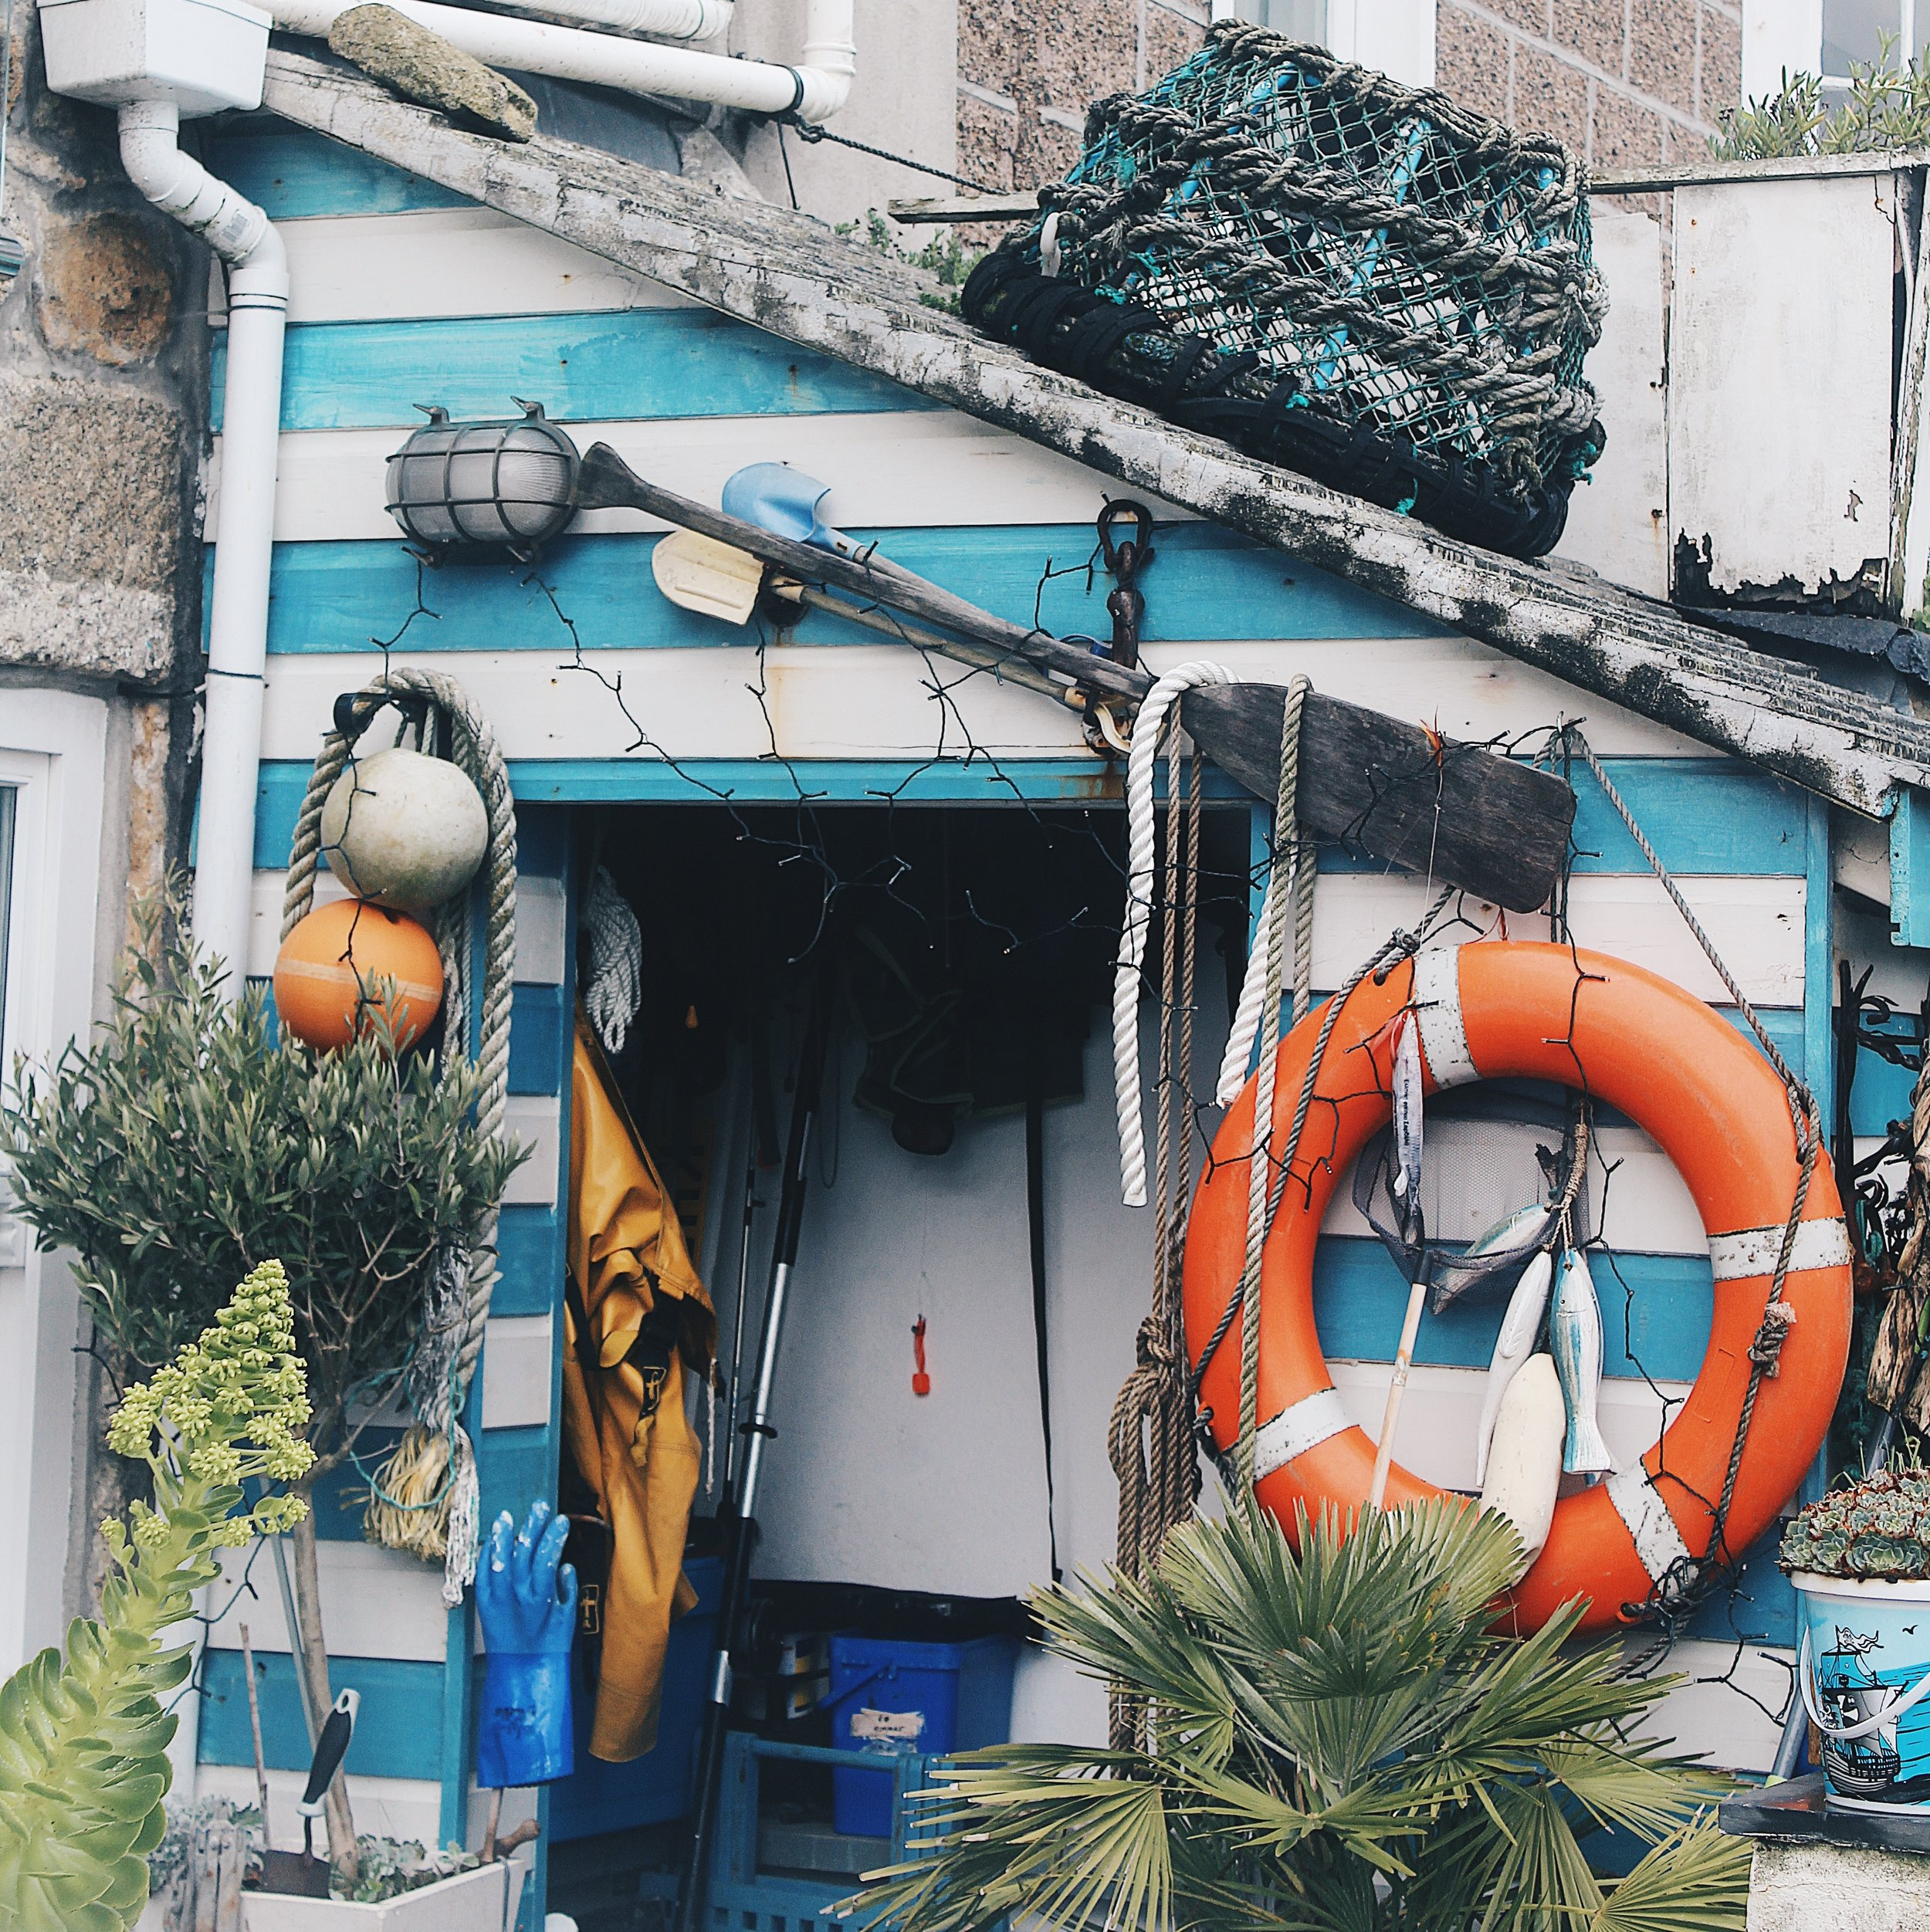 The eclectic houses of St Ives. You will discover something new each time you visit.